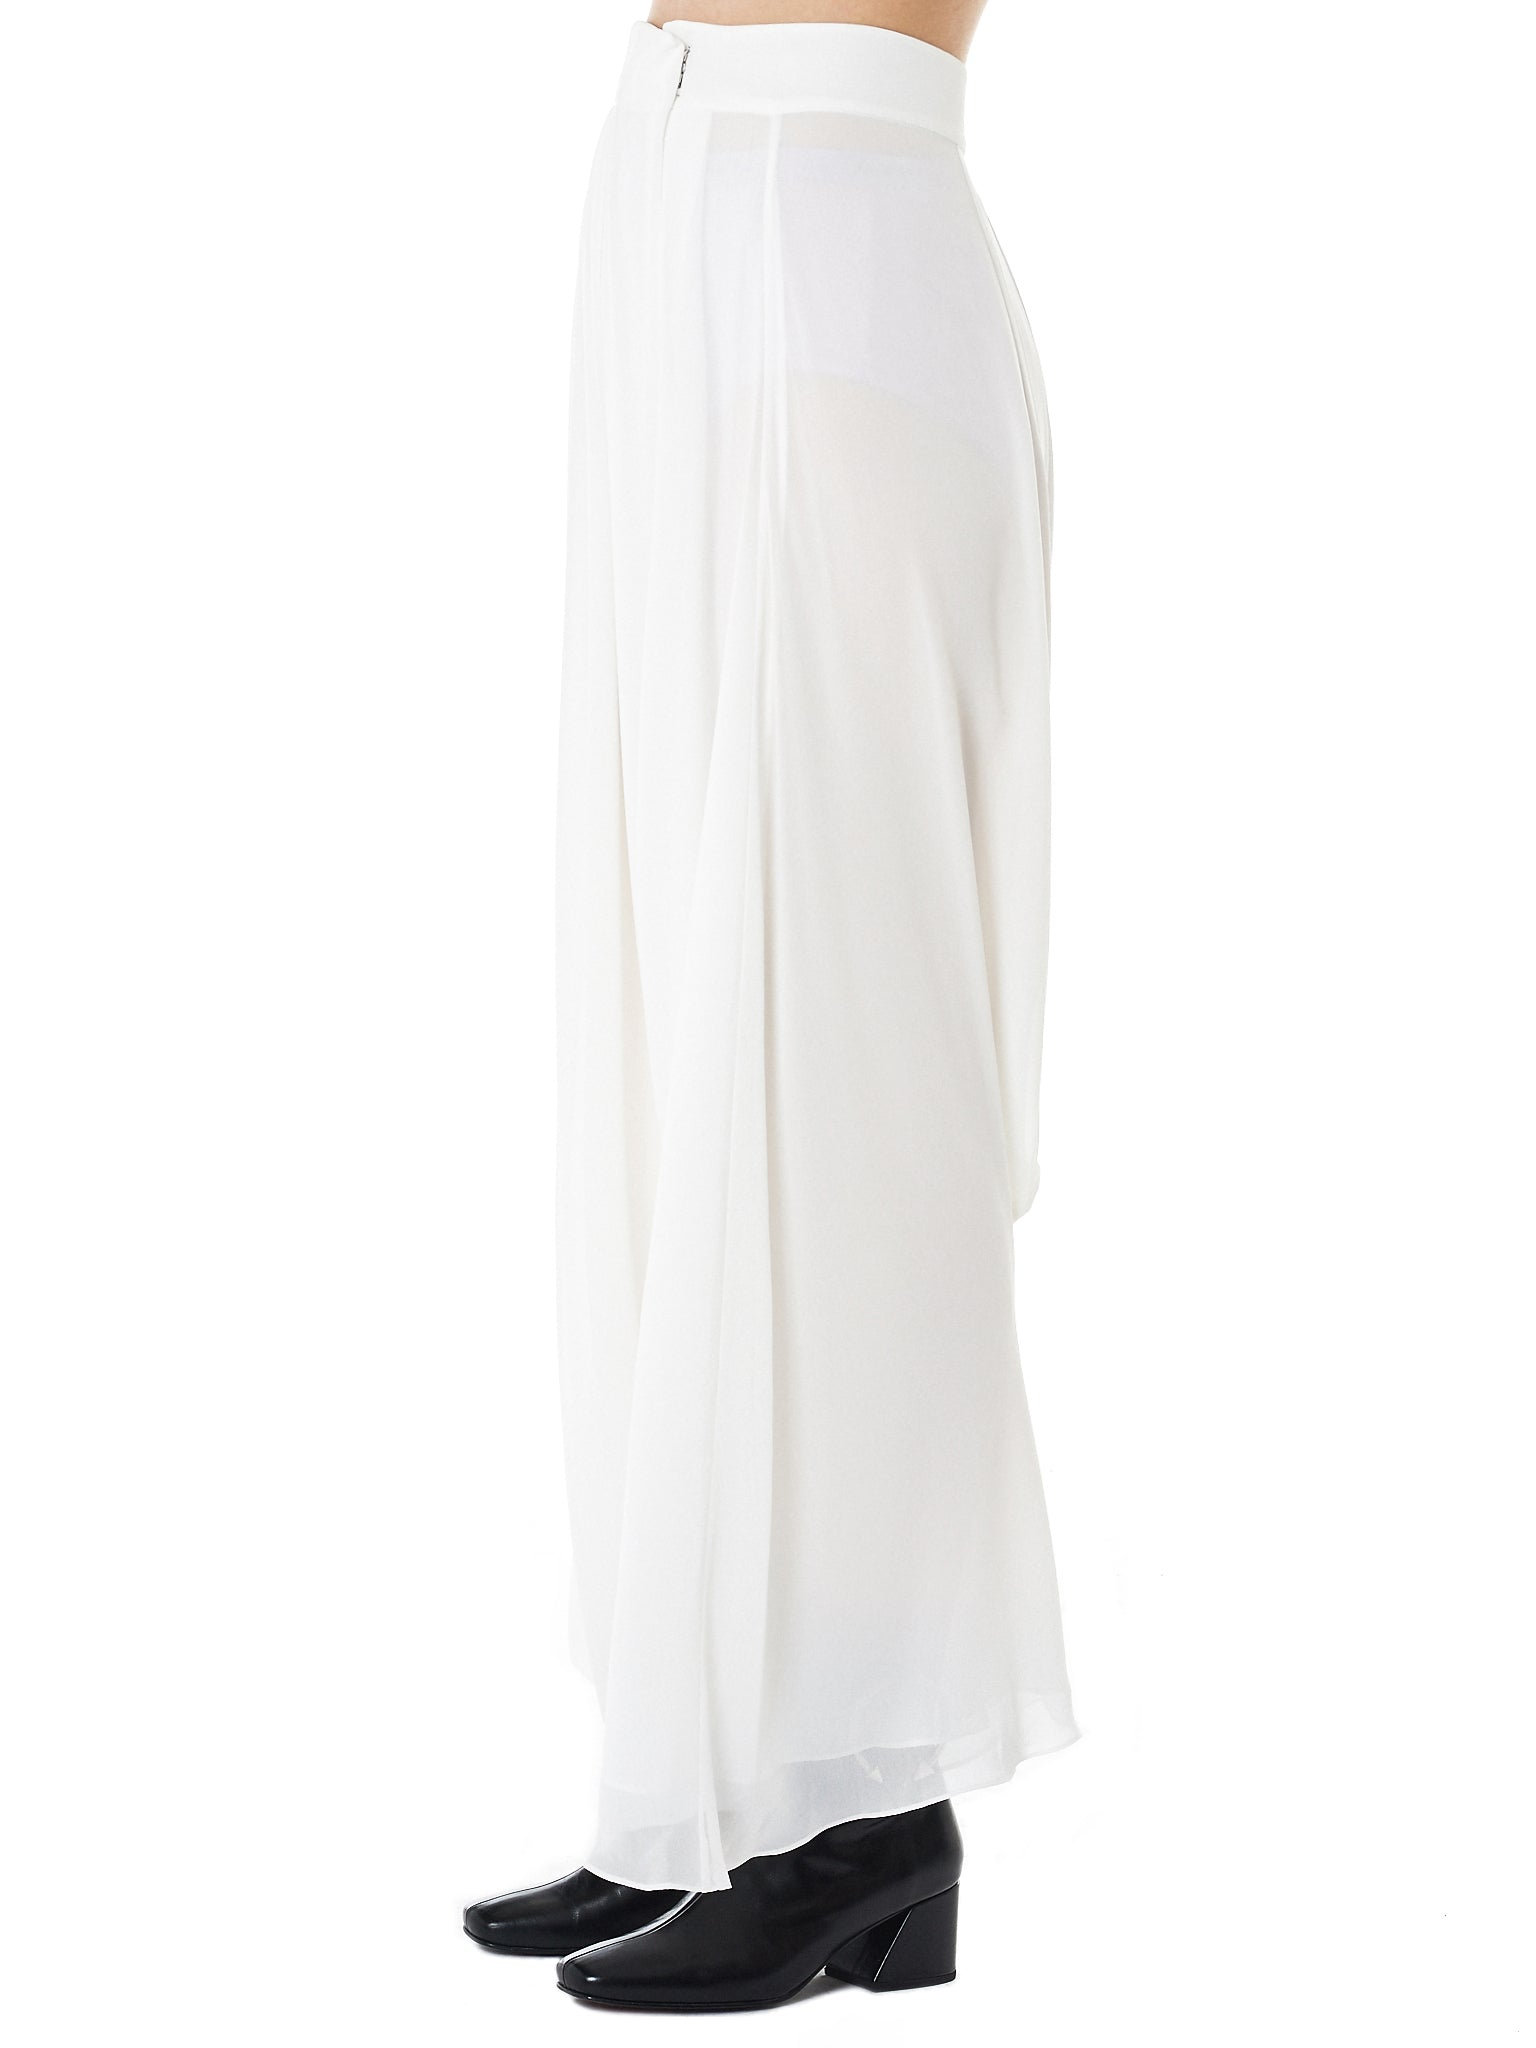 Draped Harem Trousers (GLS-PT83-IVORY)